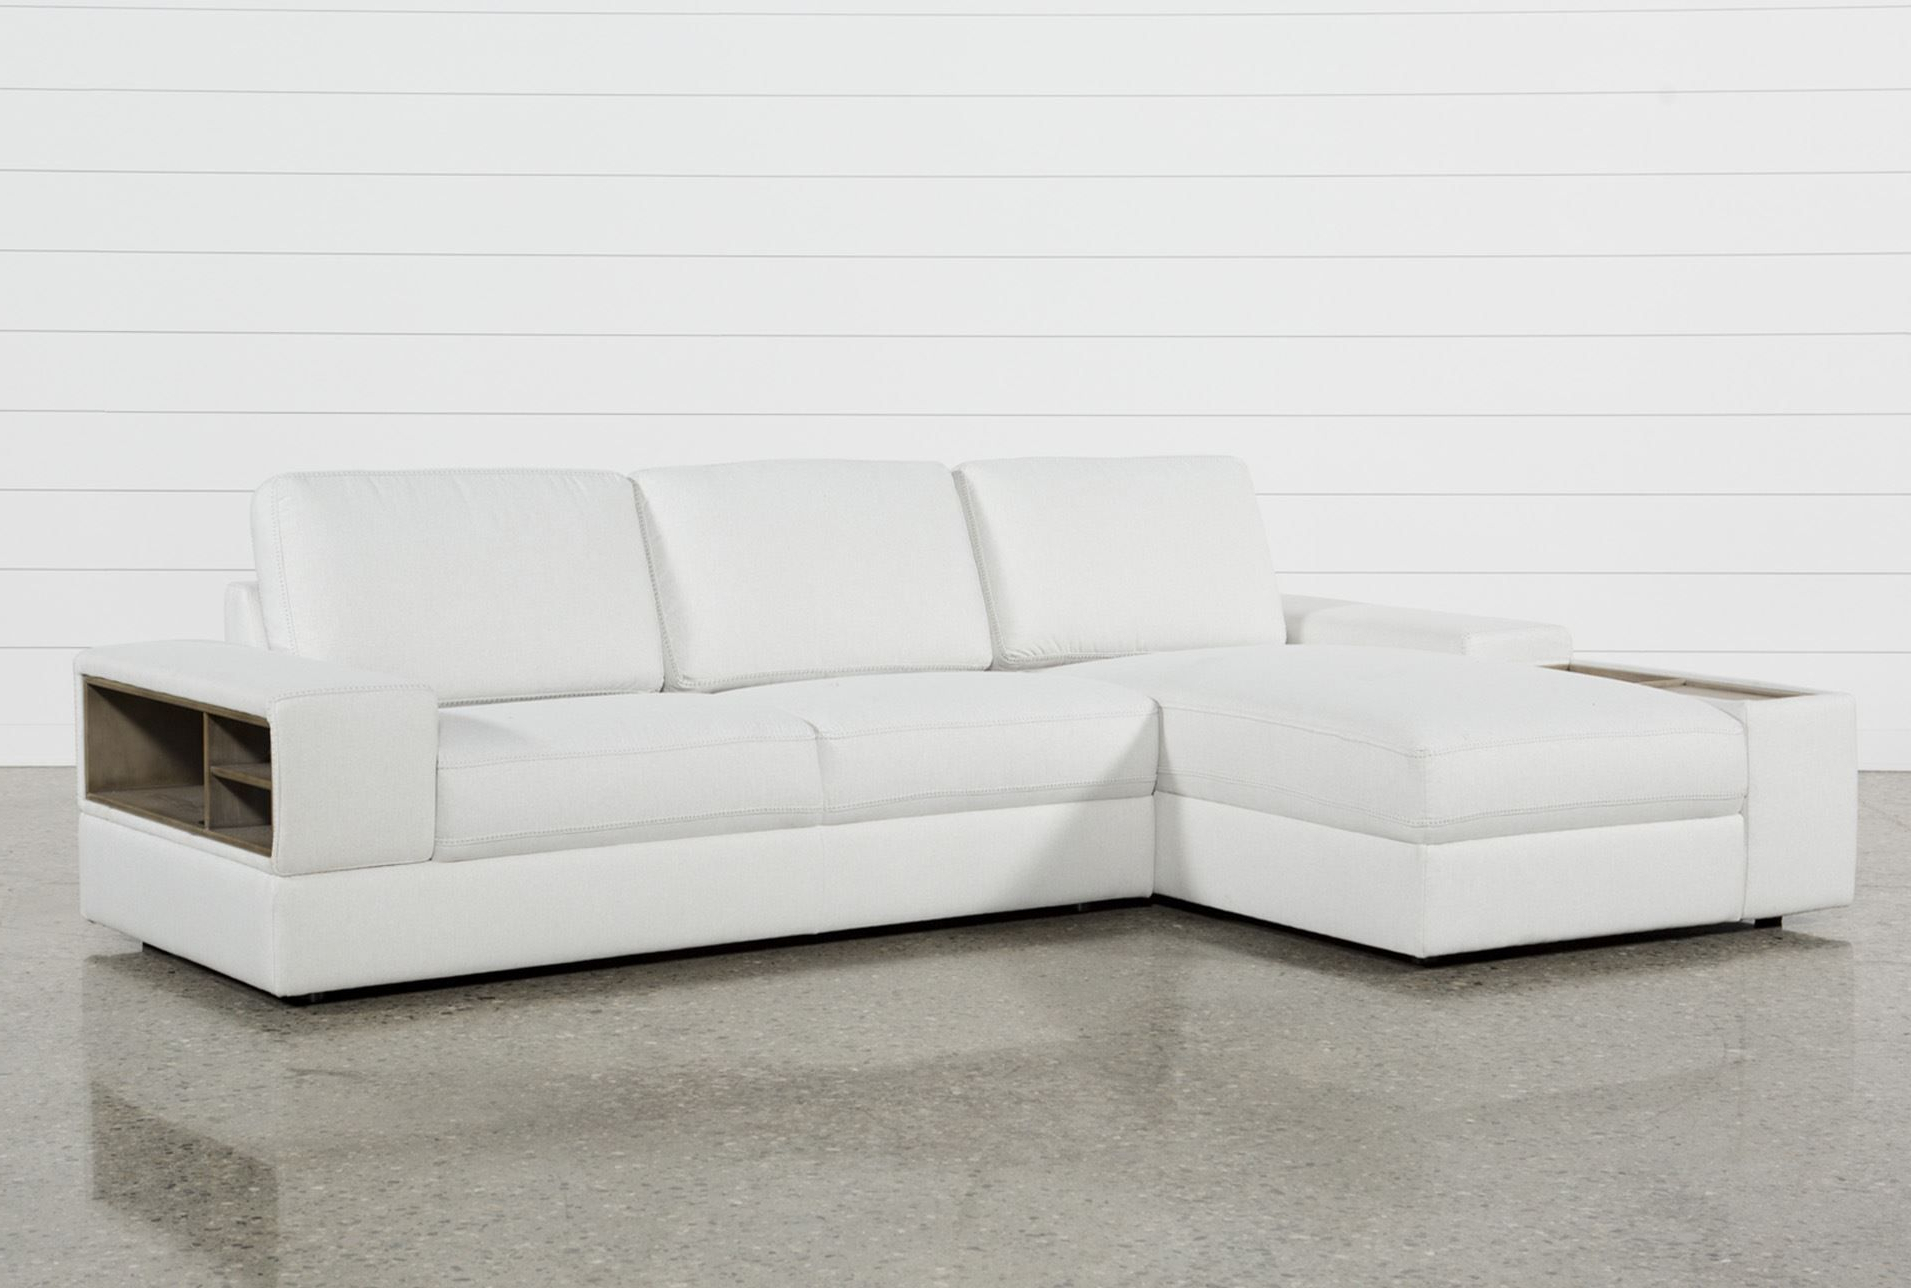 Recent Arrowmask 2 Piece Sectionals With Sleeper & Left Facing Chaise In Larimar Stone 2 Piece Sectional W/laf Chaise & Usb, Grey, Sofas (Gallery 11 of 20)